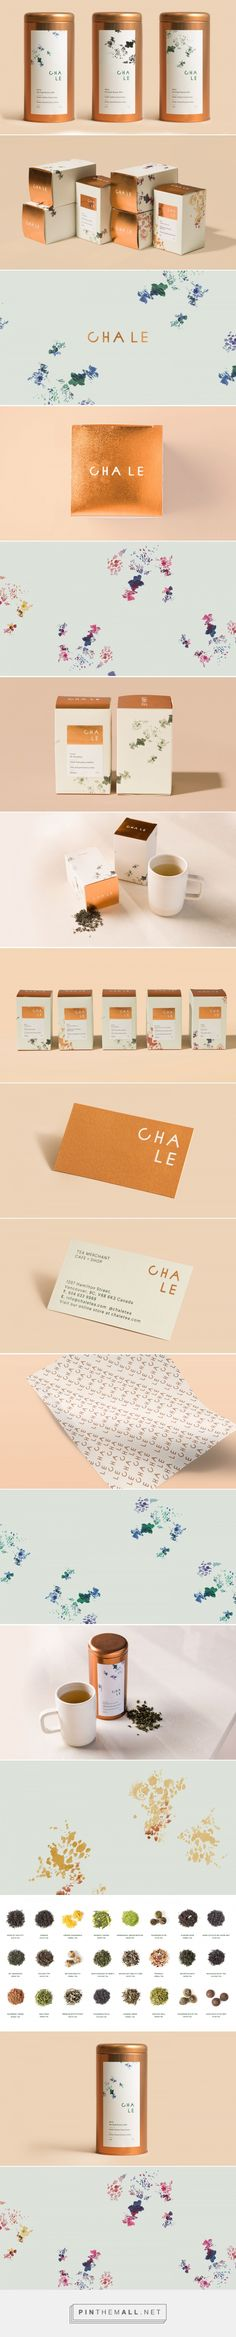 Cha Le Tea Branding and Packaging by Glasfurd and Walker | Fivestar Branding Agency – Design and Branding Agency & Curated Inspiration Gallery